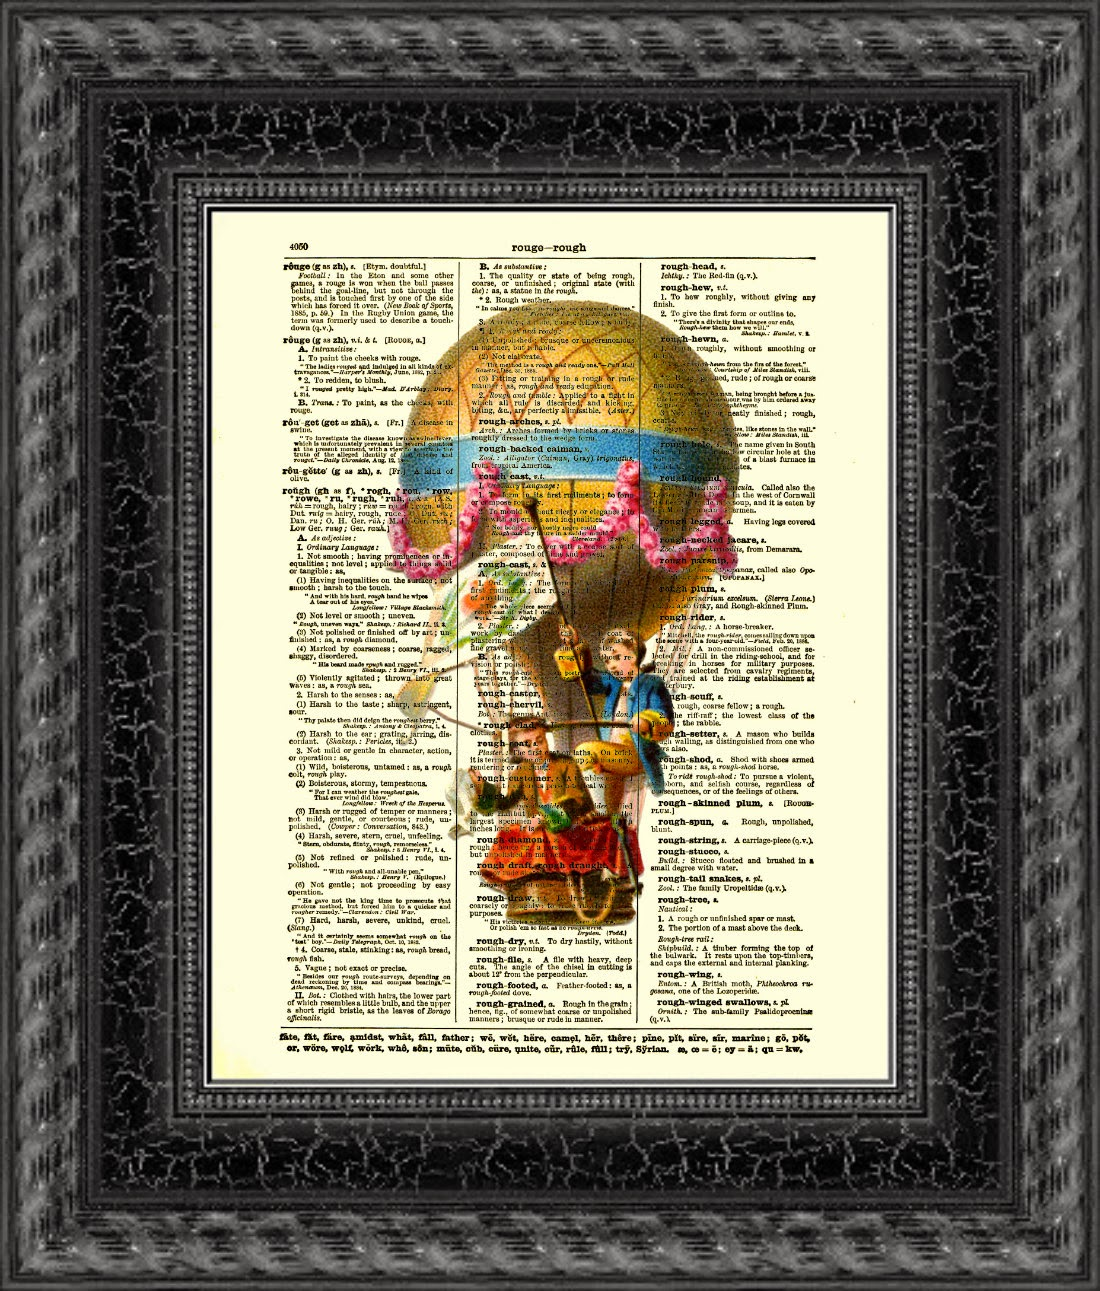 18-Children-Hot-Air-Balloon-Belle-Old-Books-and-Dictionaries-in-Re-Imagination-Prints-www-designstack-co